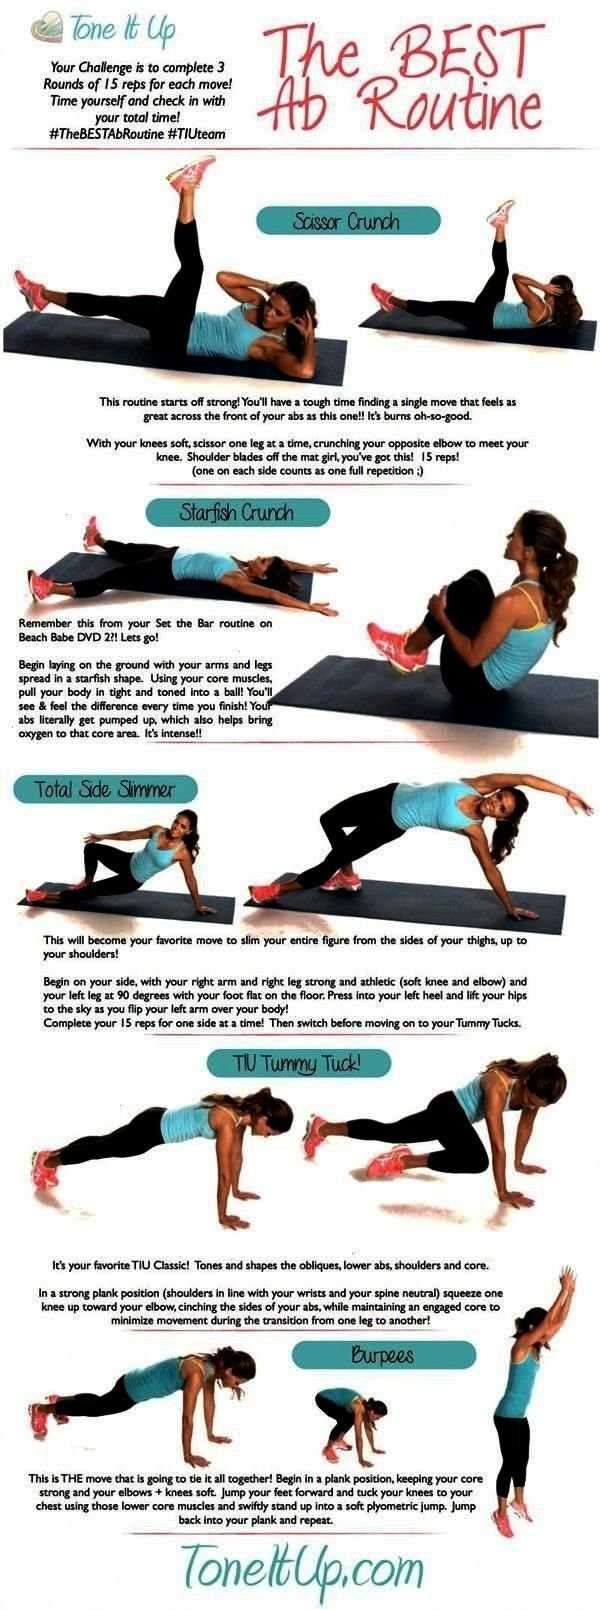 #anytimethe #gymrabest #transform #exercise #focusing #yourself #workout #routine #anytime #healthy...